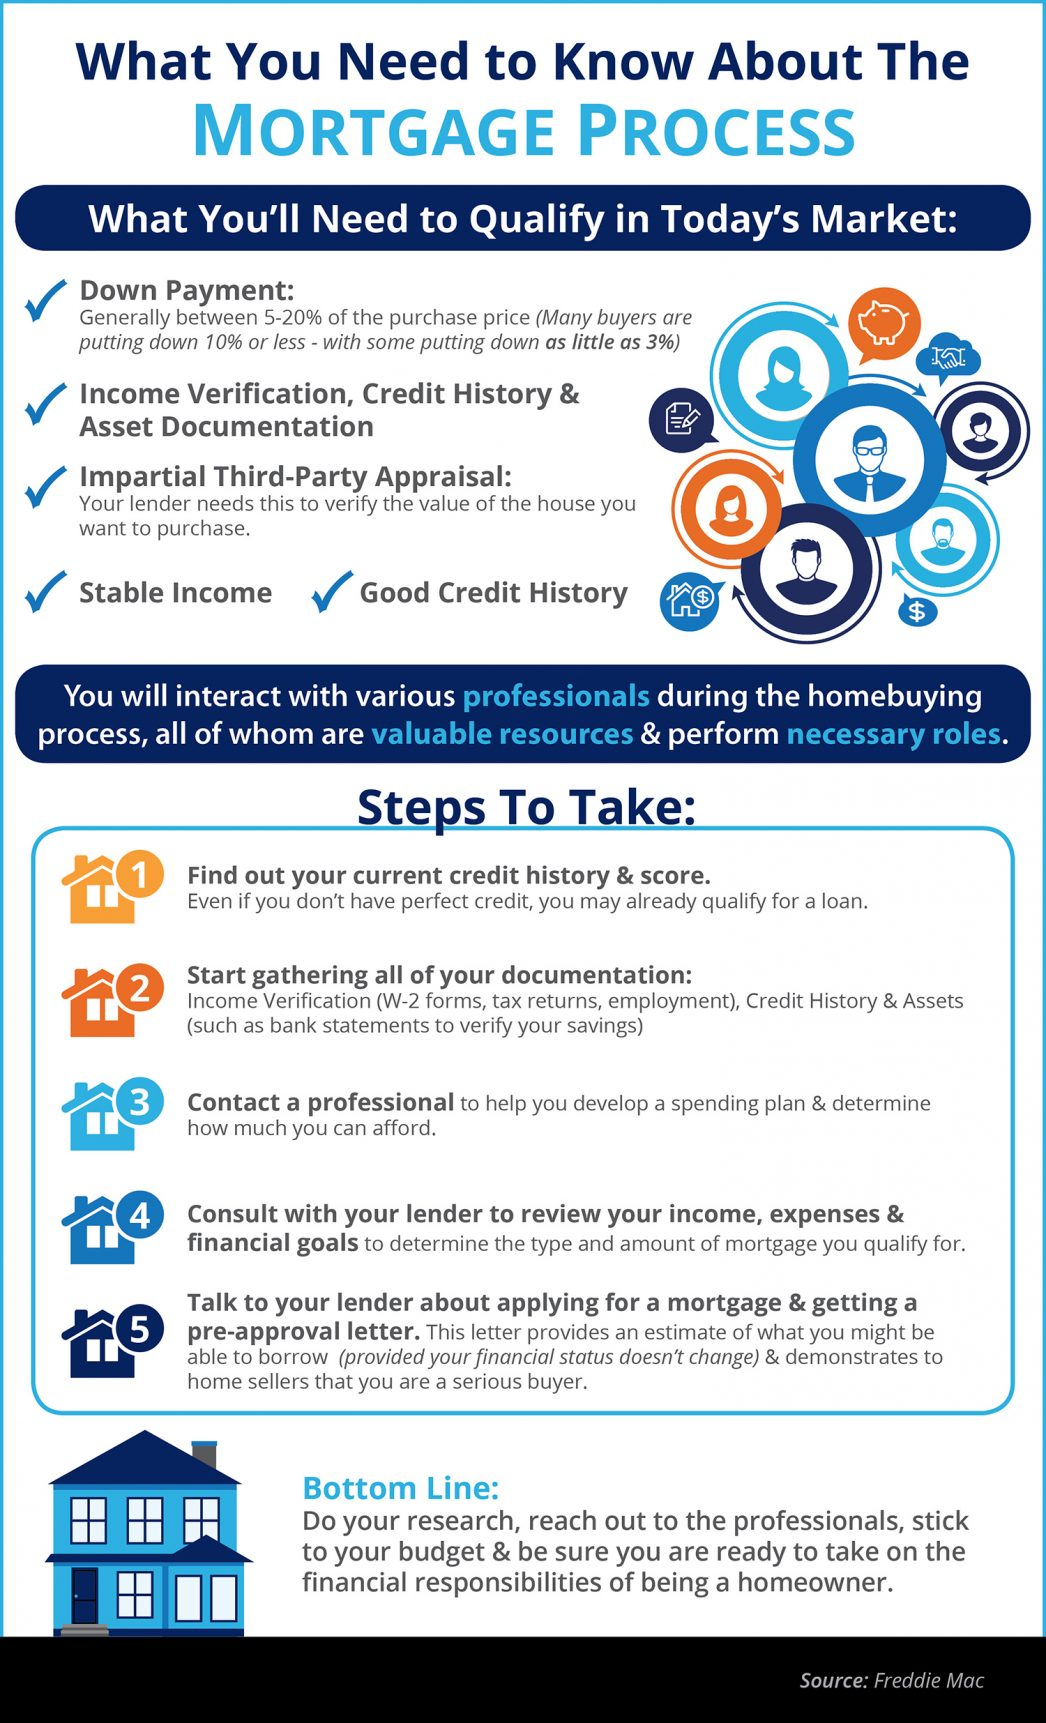 Mortgage-Process-ENG-STM-1046x1723.jpg